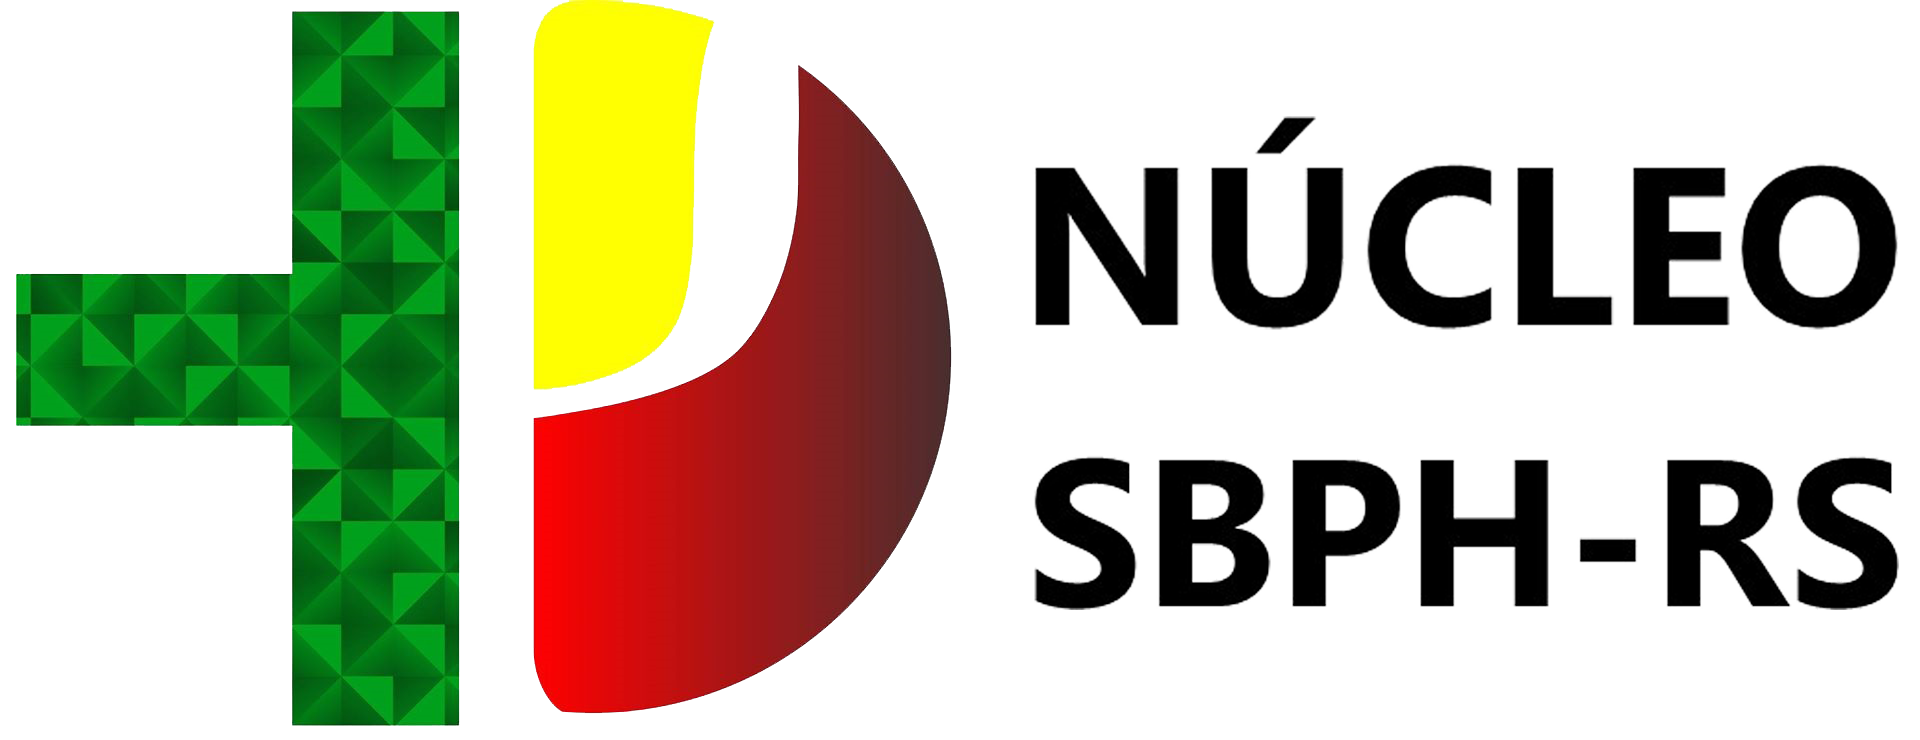 MARCA NUCELO RS PNG